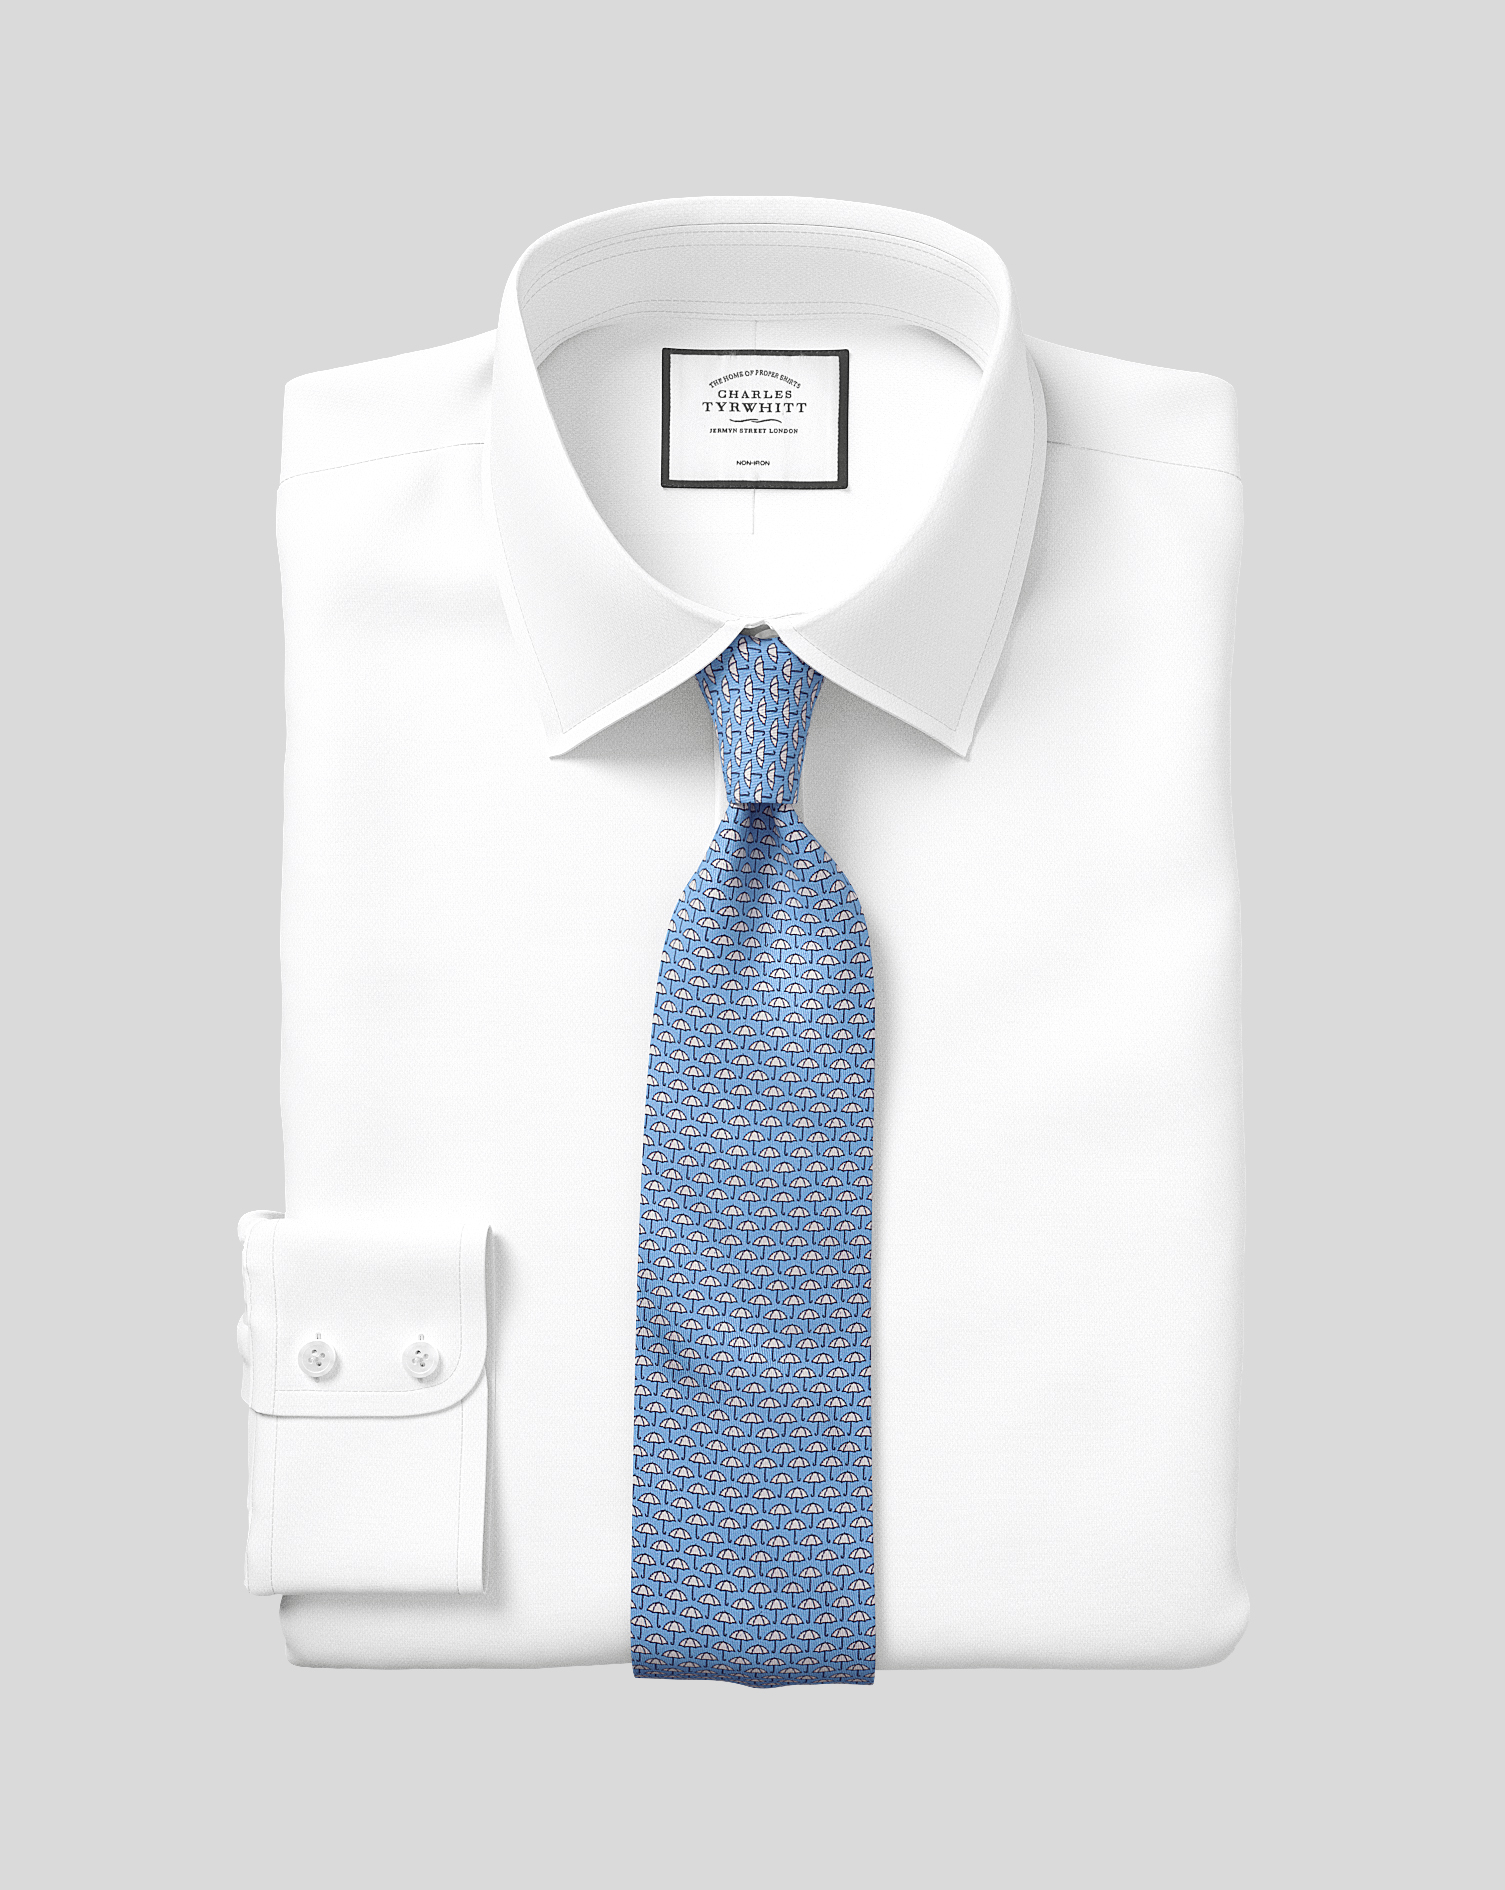 Slim Fit Non-Iron White Royal Panama Cotton Formal Shirt Single Cuff Size 15.5/35 by Charles Tyrwhit